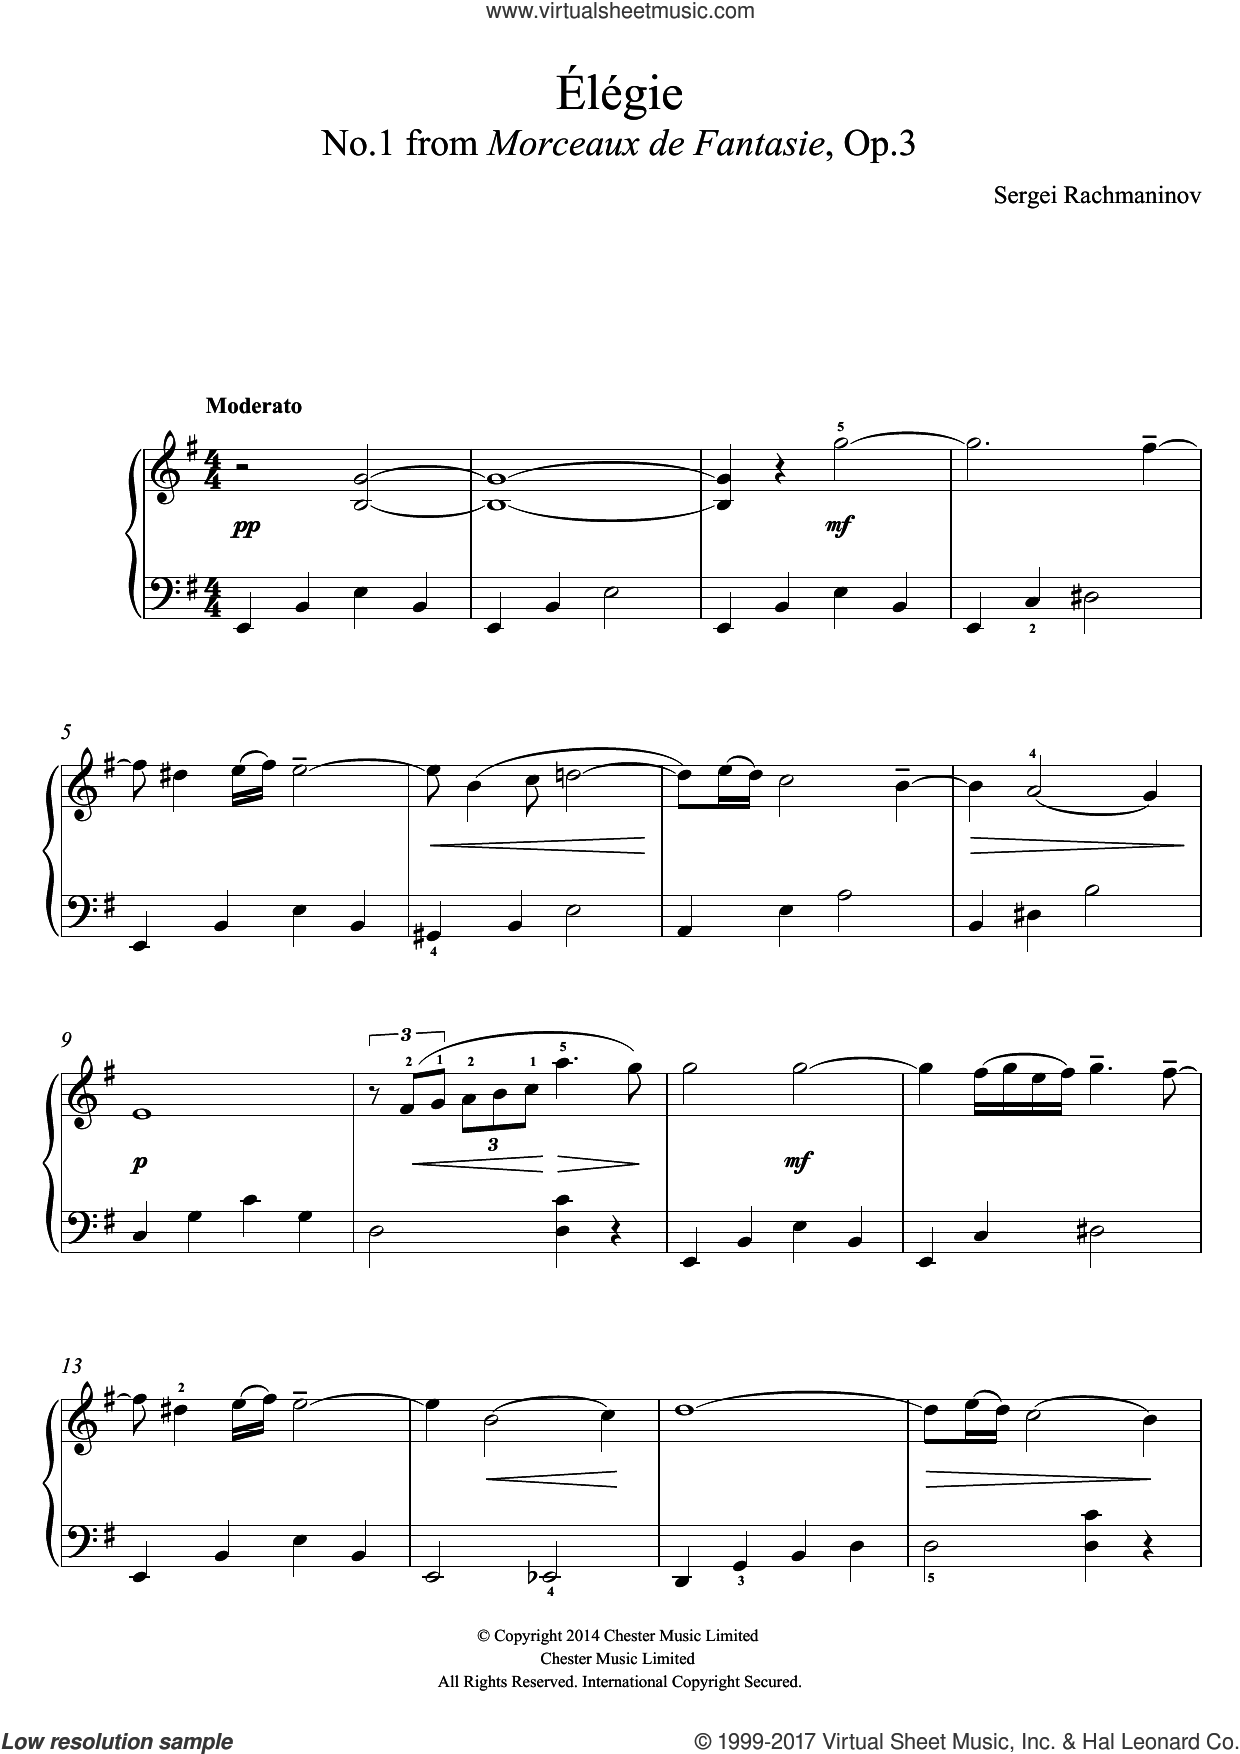 Elegie (No.1 from Morceaux de Fantasie, Op.3) sheet music for piano solo (beginners) by Serjeij Rachmaninoff, classical score, beginner piano (beginners)